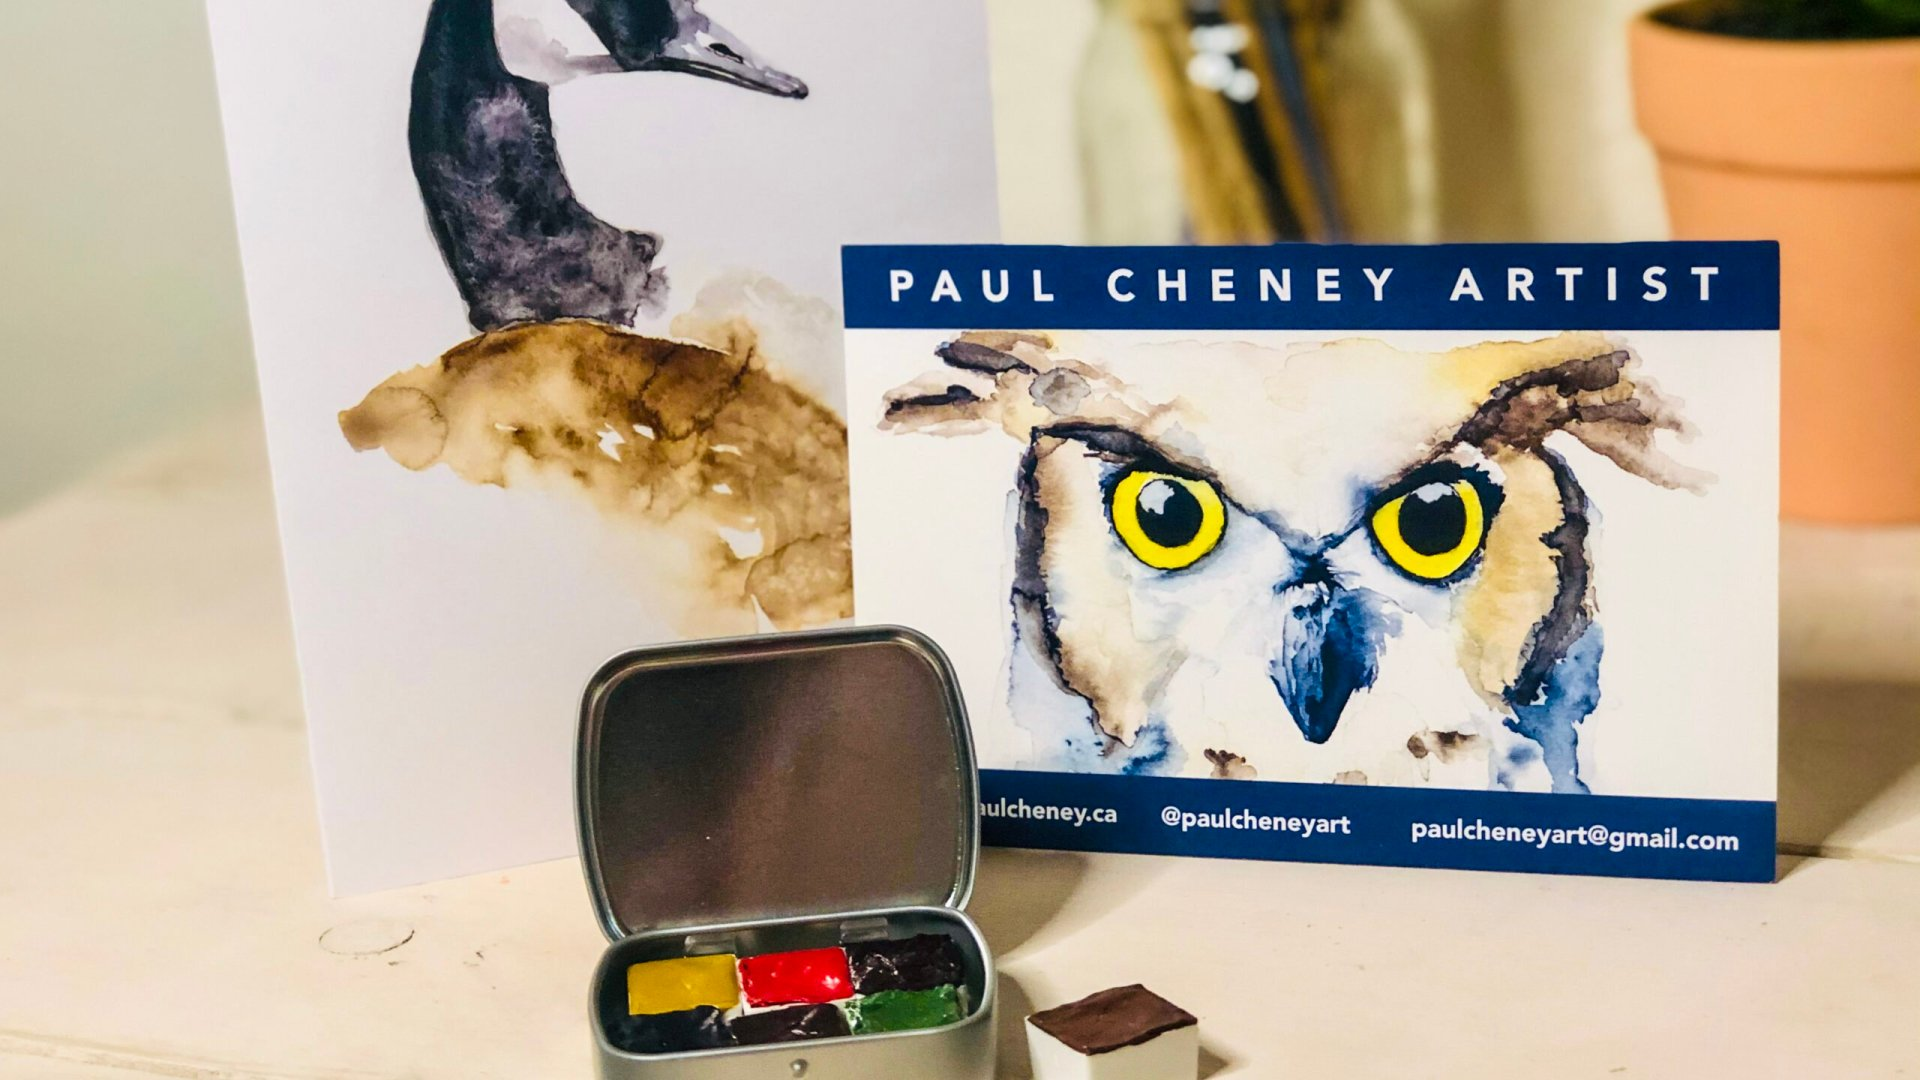 Paul Cheney Art Watercolor Palette and Custom Artwork